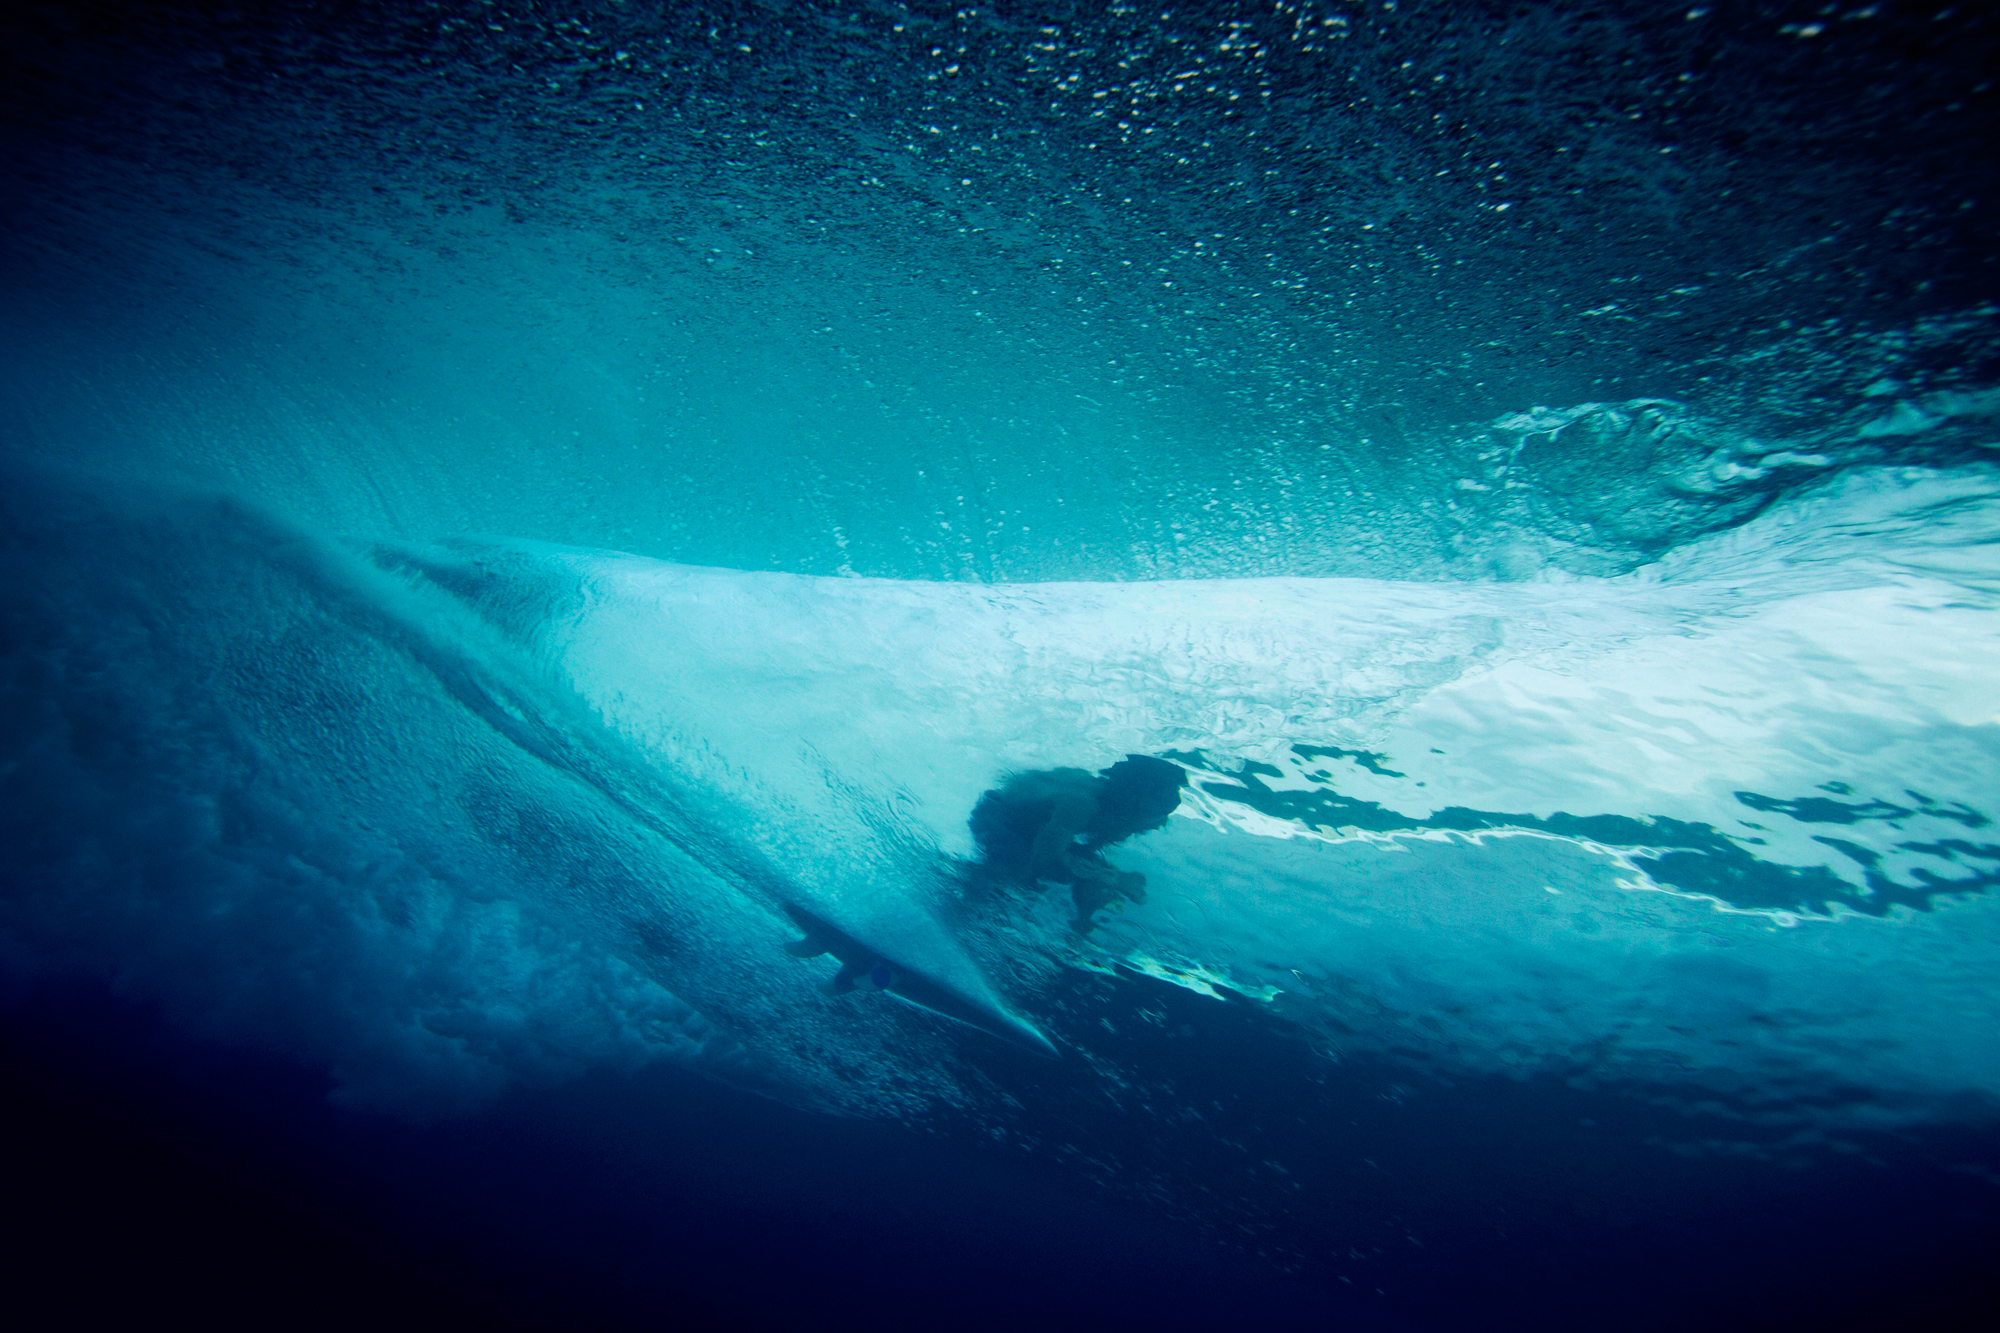 The Blue Chaser Aquabumps a91g2697